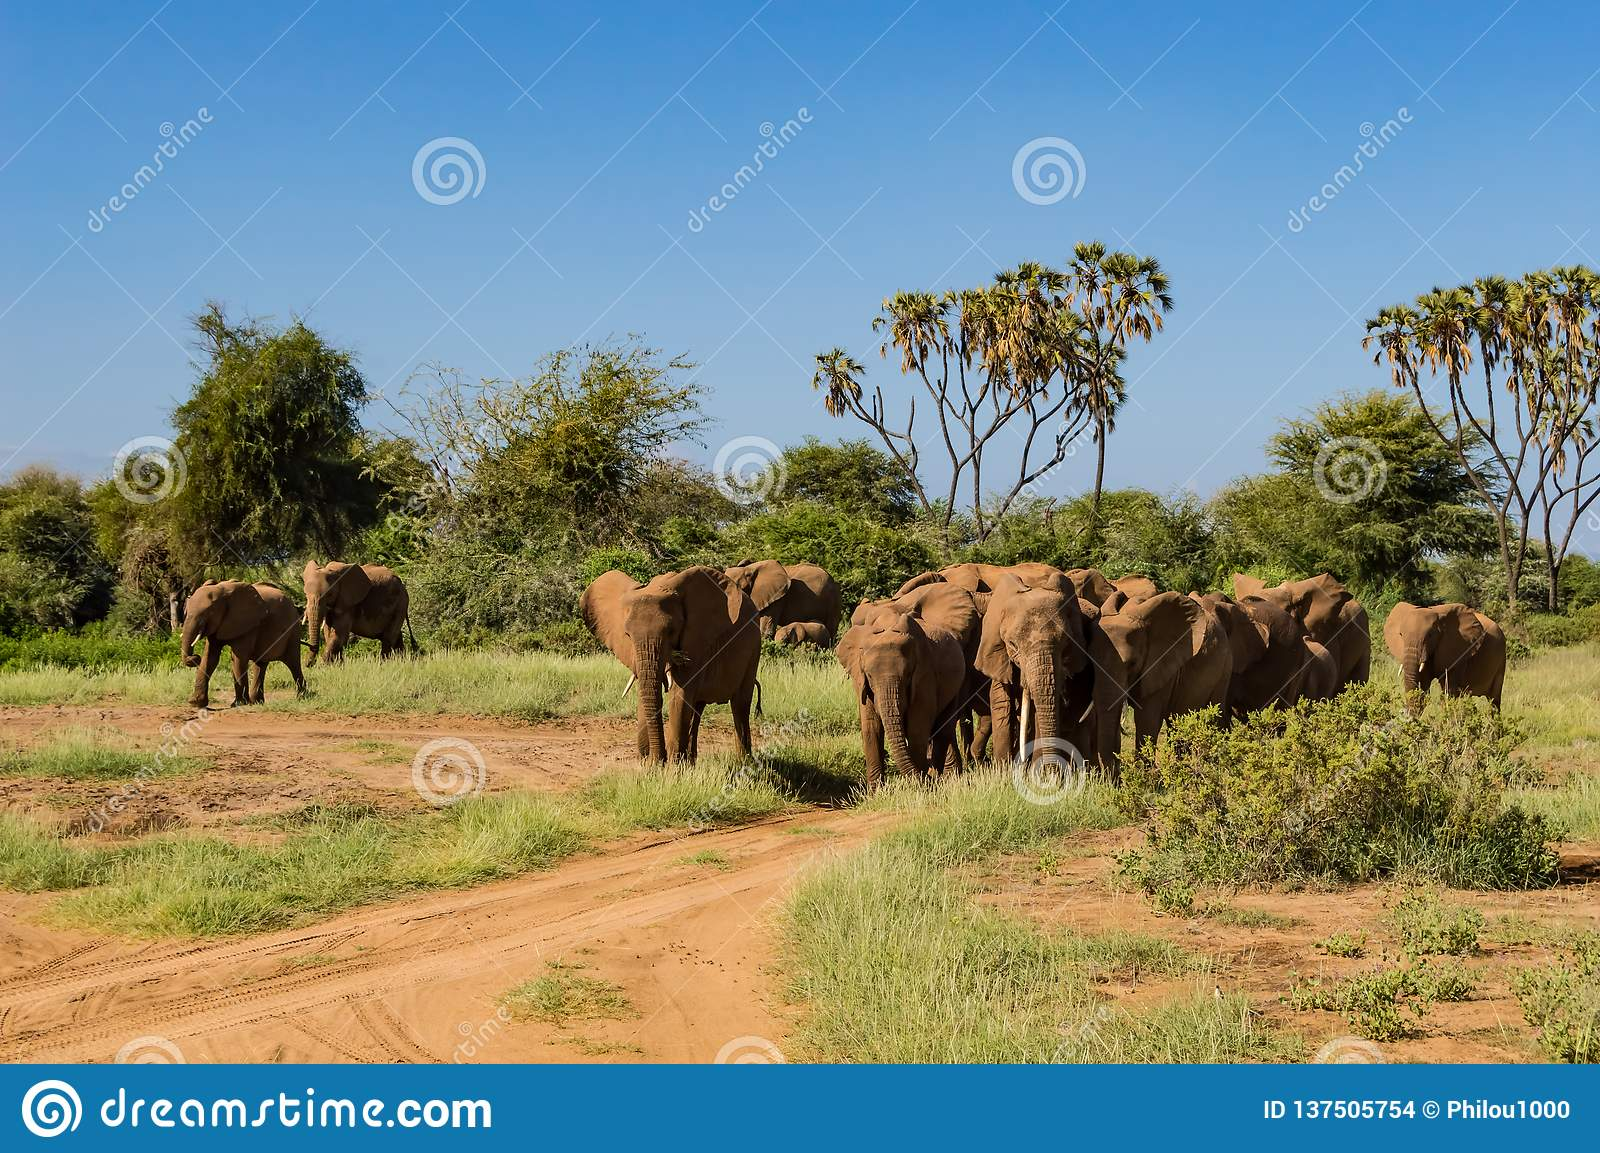 Herd elephants in the savannah